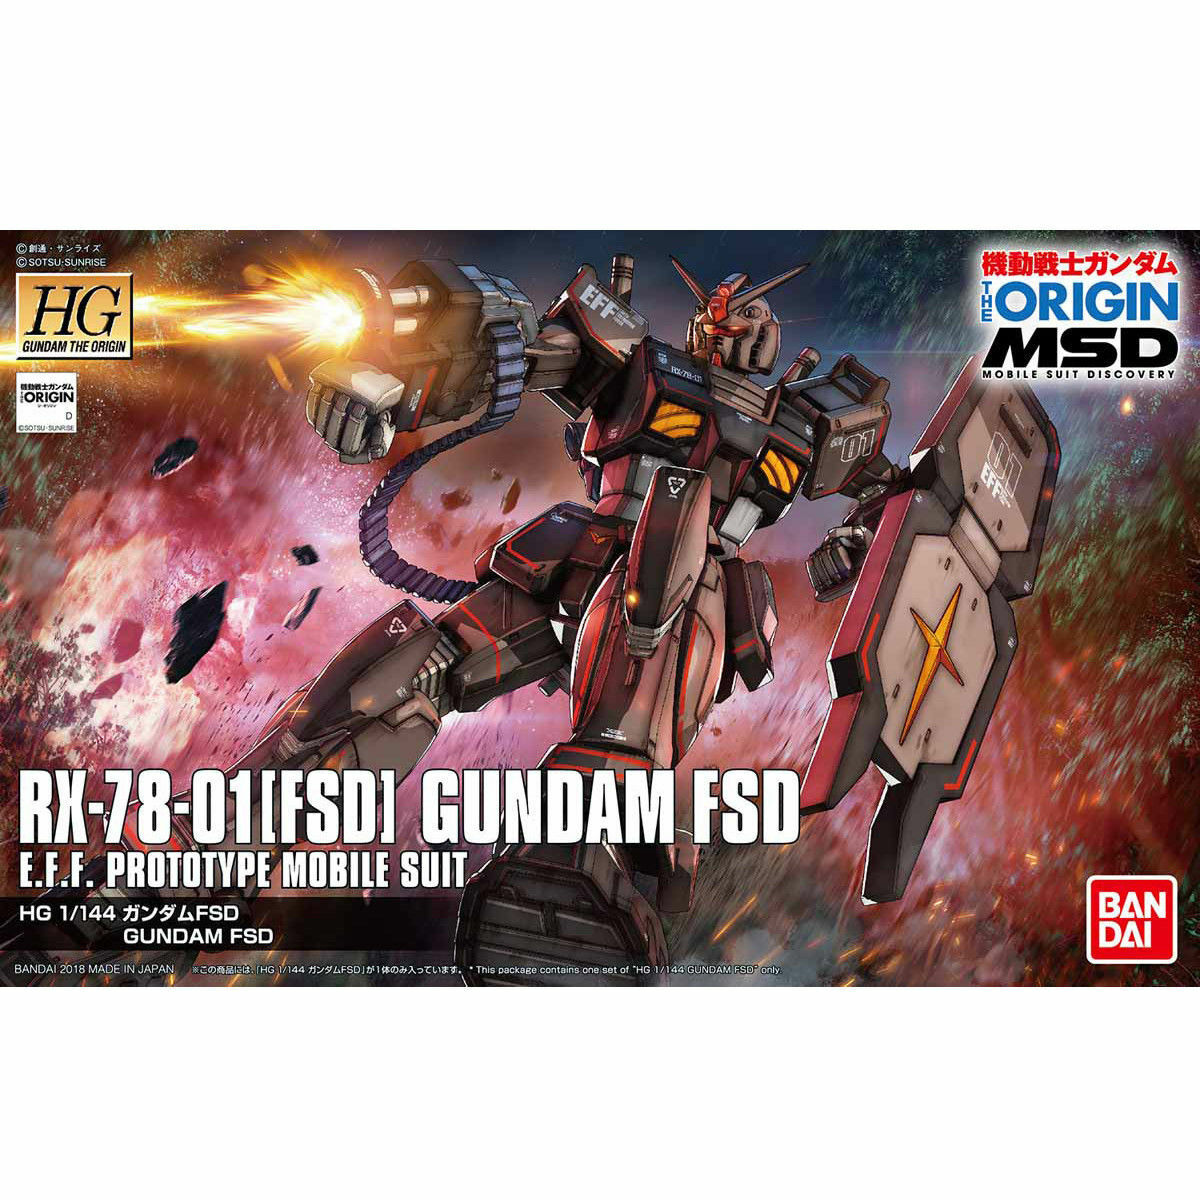 BANDAI HG 1 144 RX-78-01[FSD] GUNDAM FSD Model Kit THE ORIGIN MSD NEW from Japan